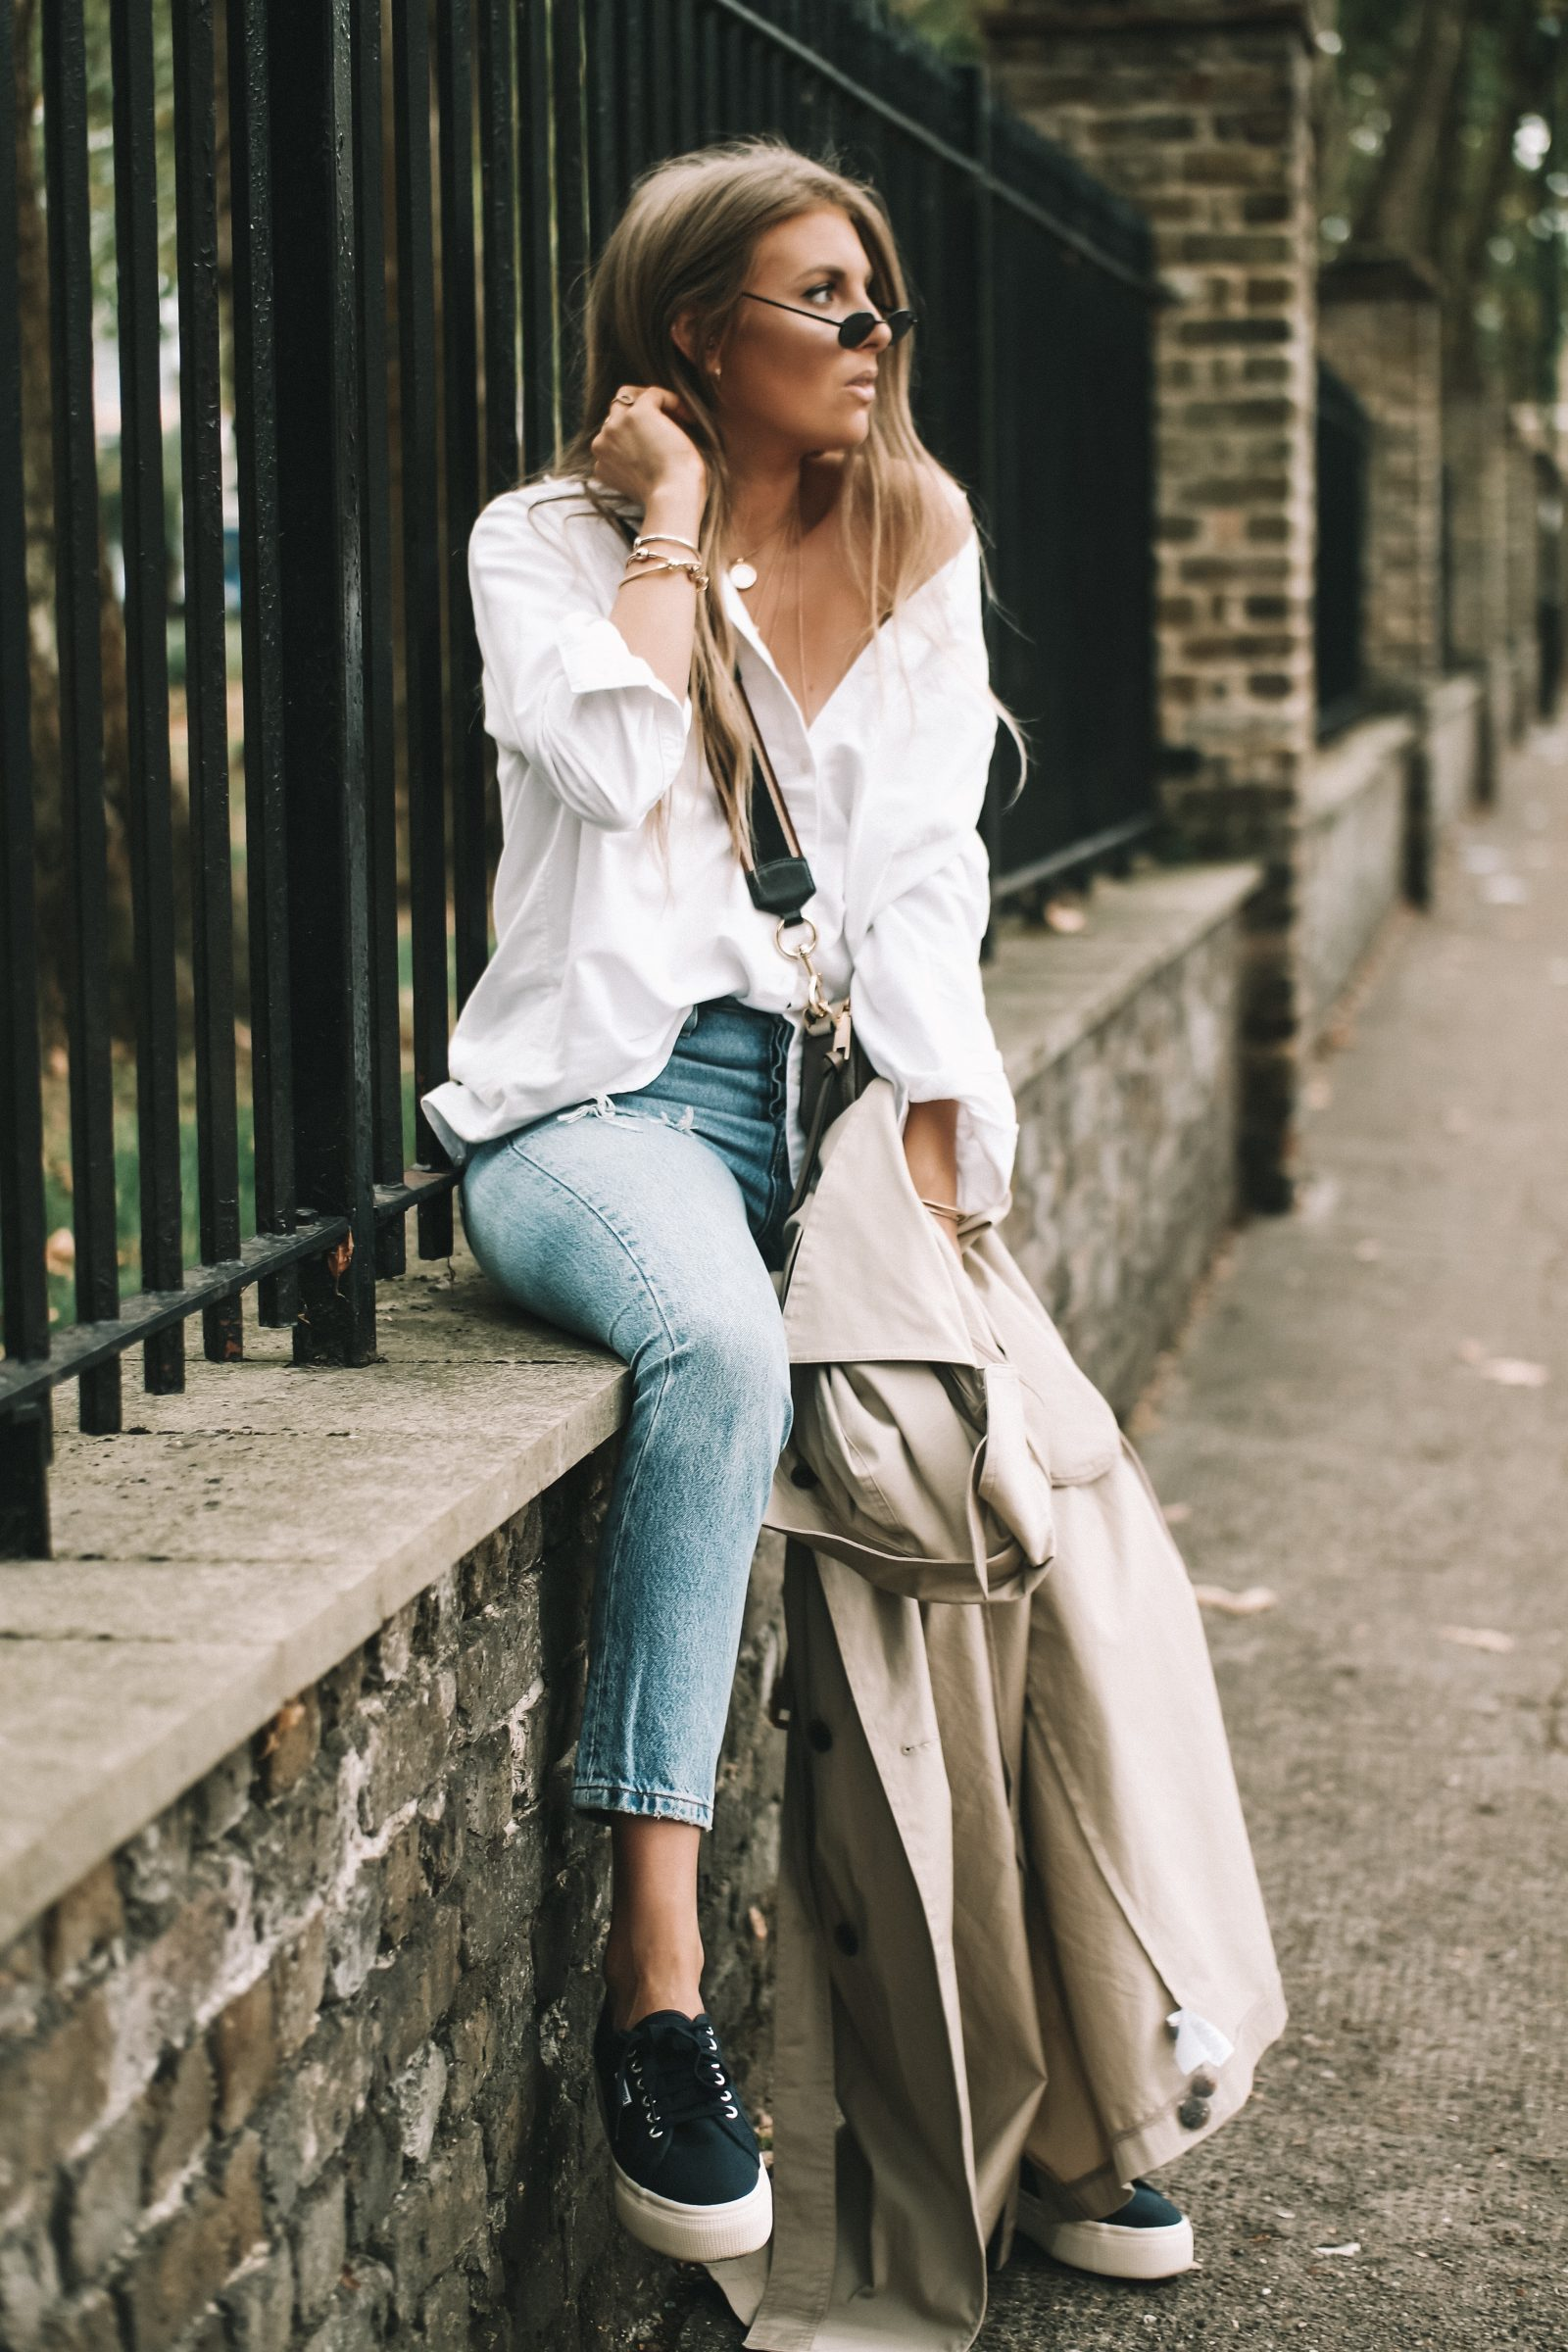 LFW Street Style - Outfit Inspo